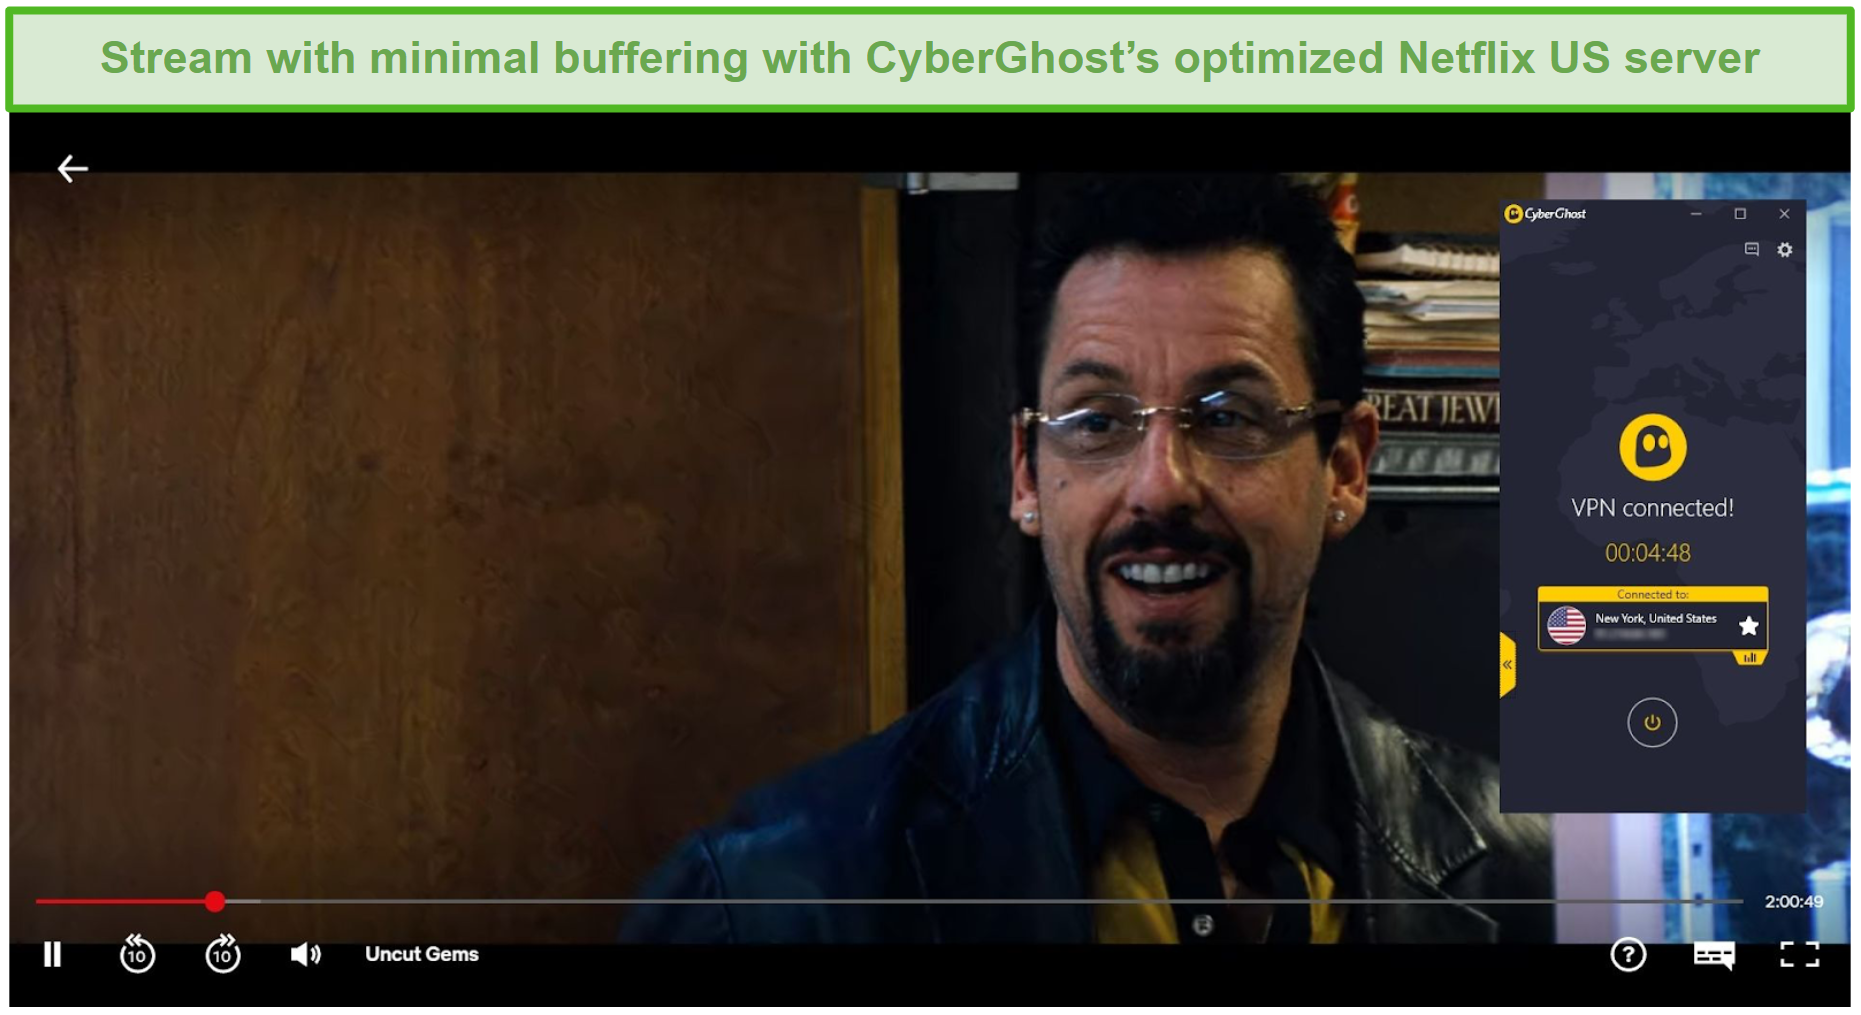 Screenshot of CyberGhost bypassing Netflix US's geoblocks to stream Uncut Gems